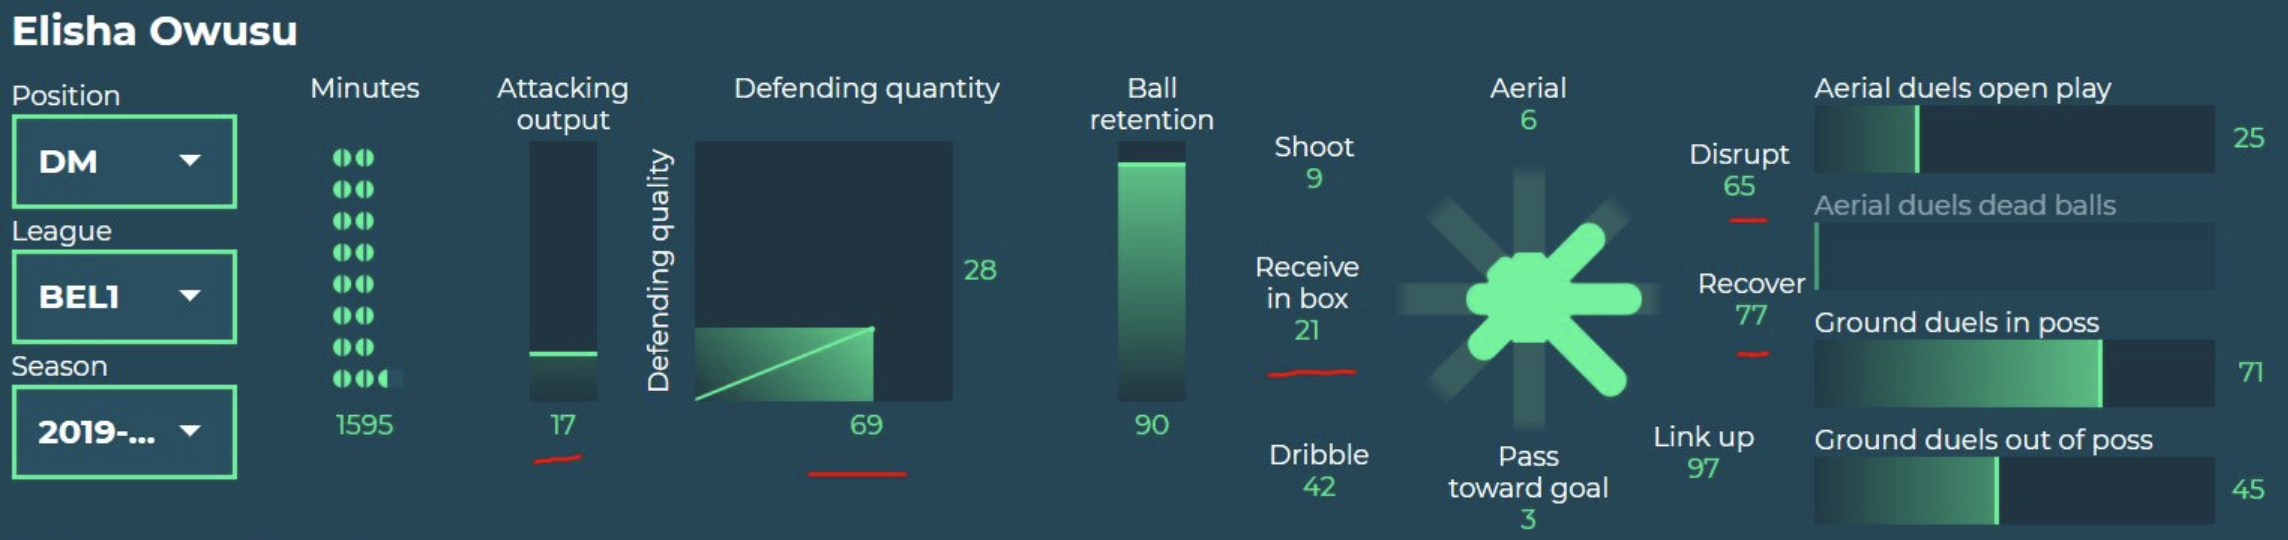 Elisha Owusu 2019/20 - scout report tactical analysis tactics